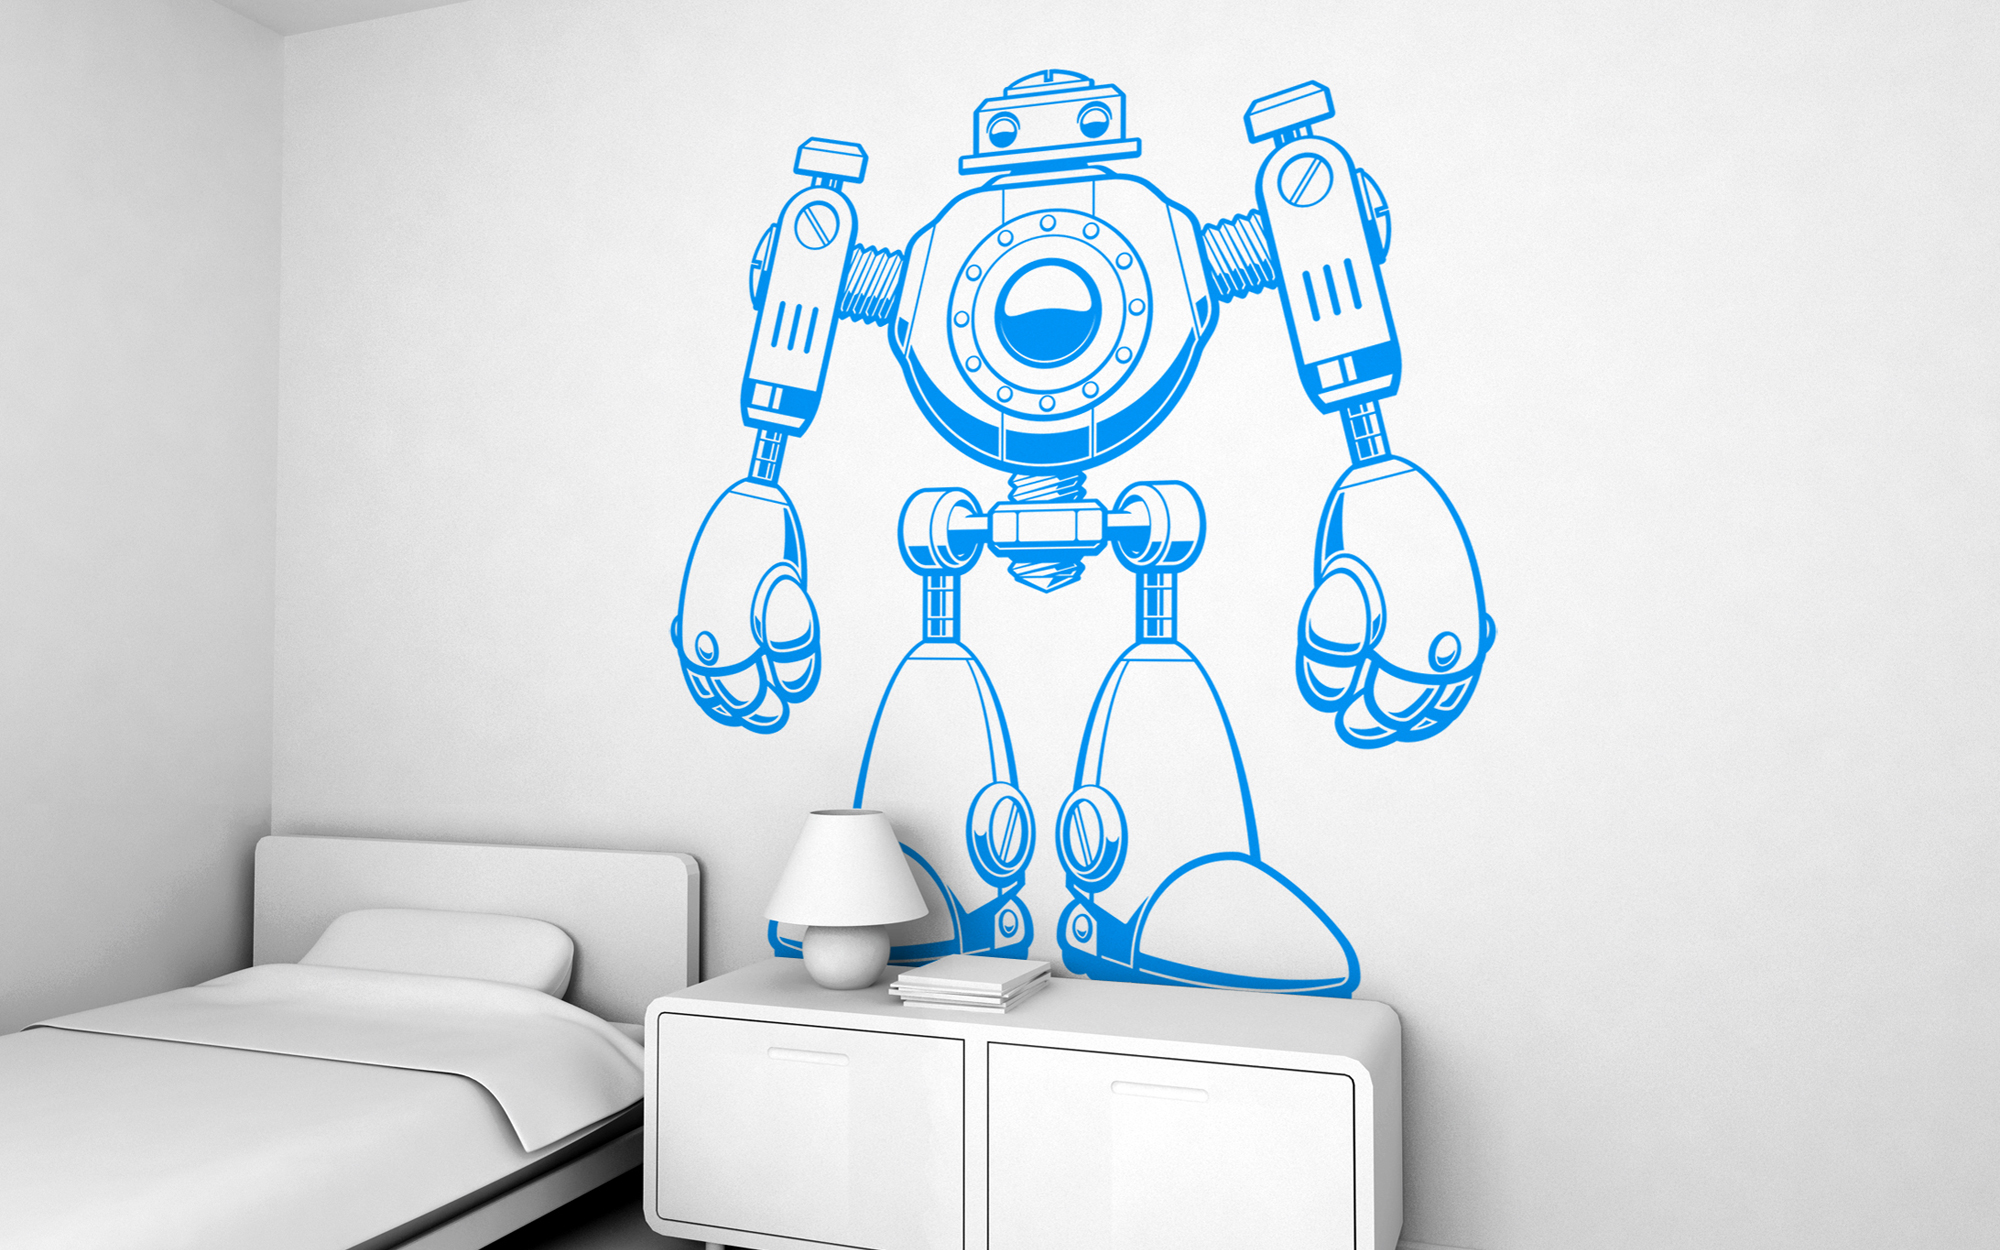 giant kids wall decals by e glue studio at coroflot com h 1 favorite qview full size